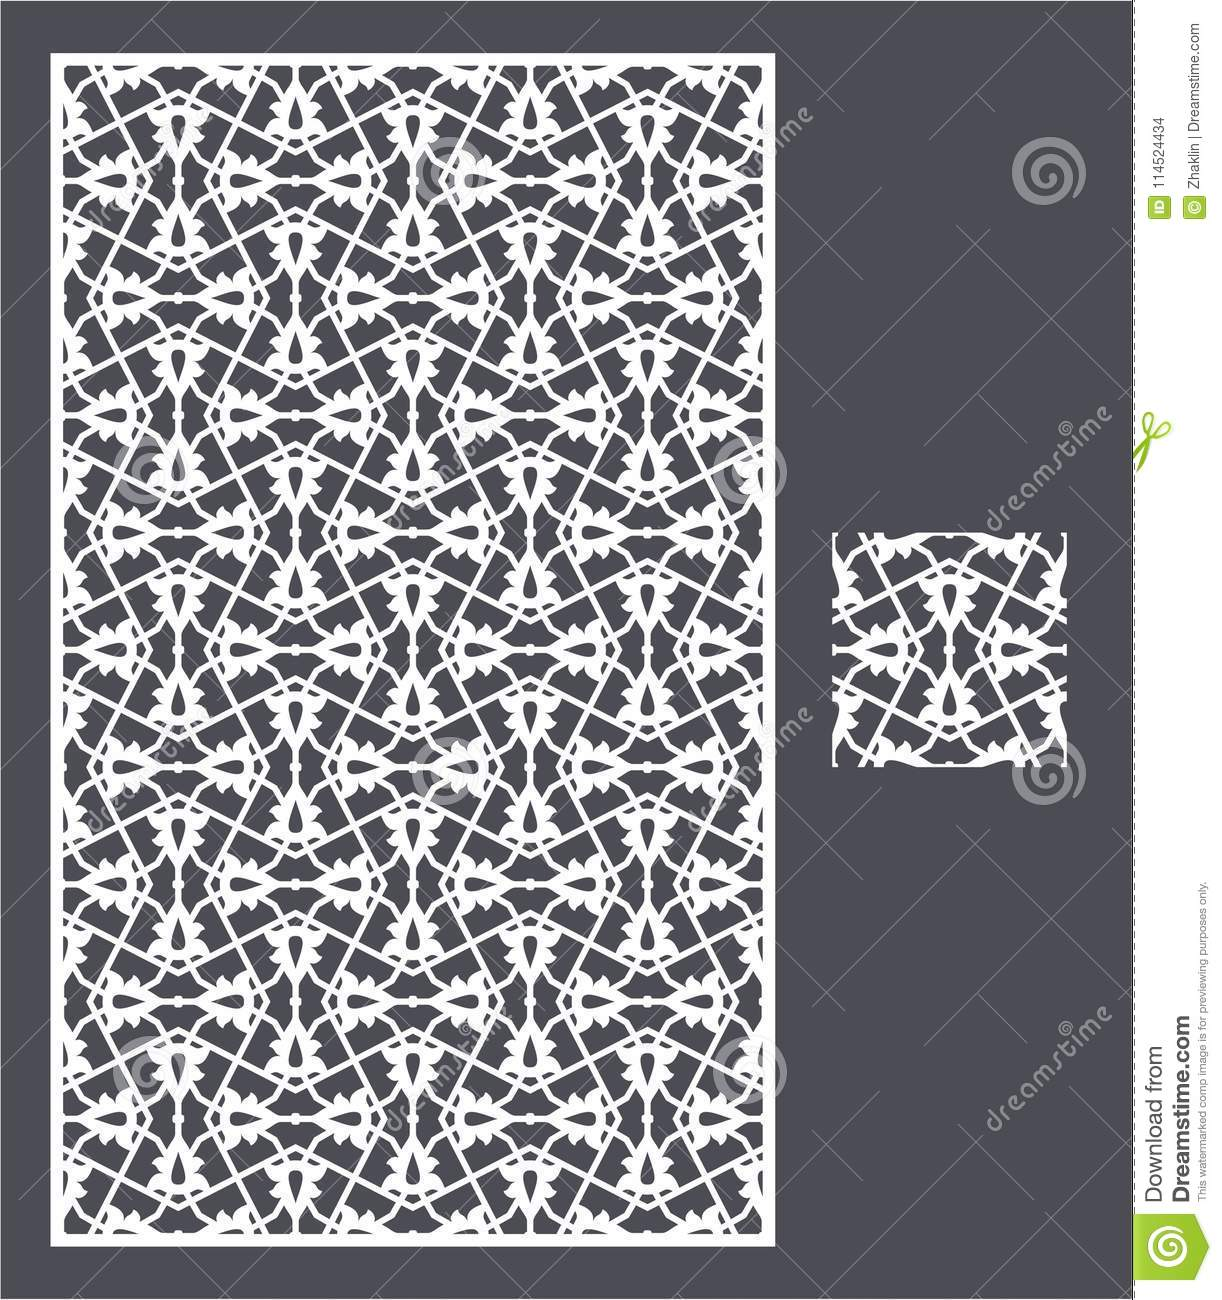 Laser Cut Panel And The Seamless Pattern For Decorative Panel Stock ...